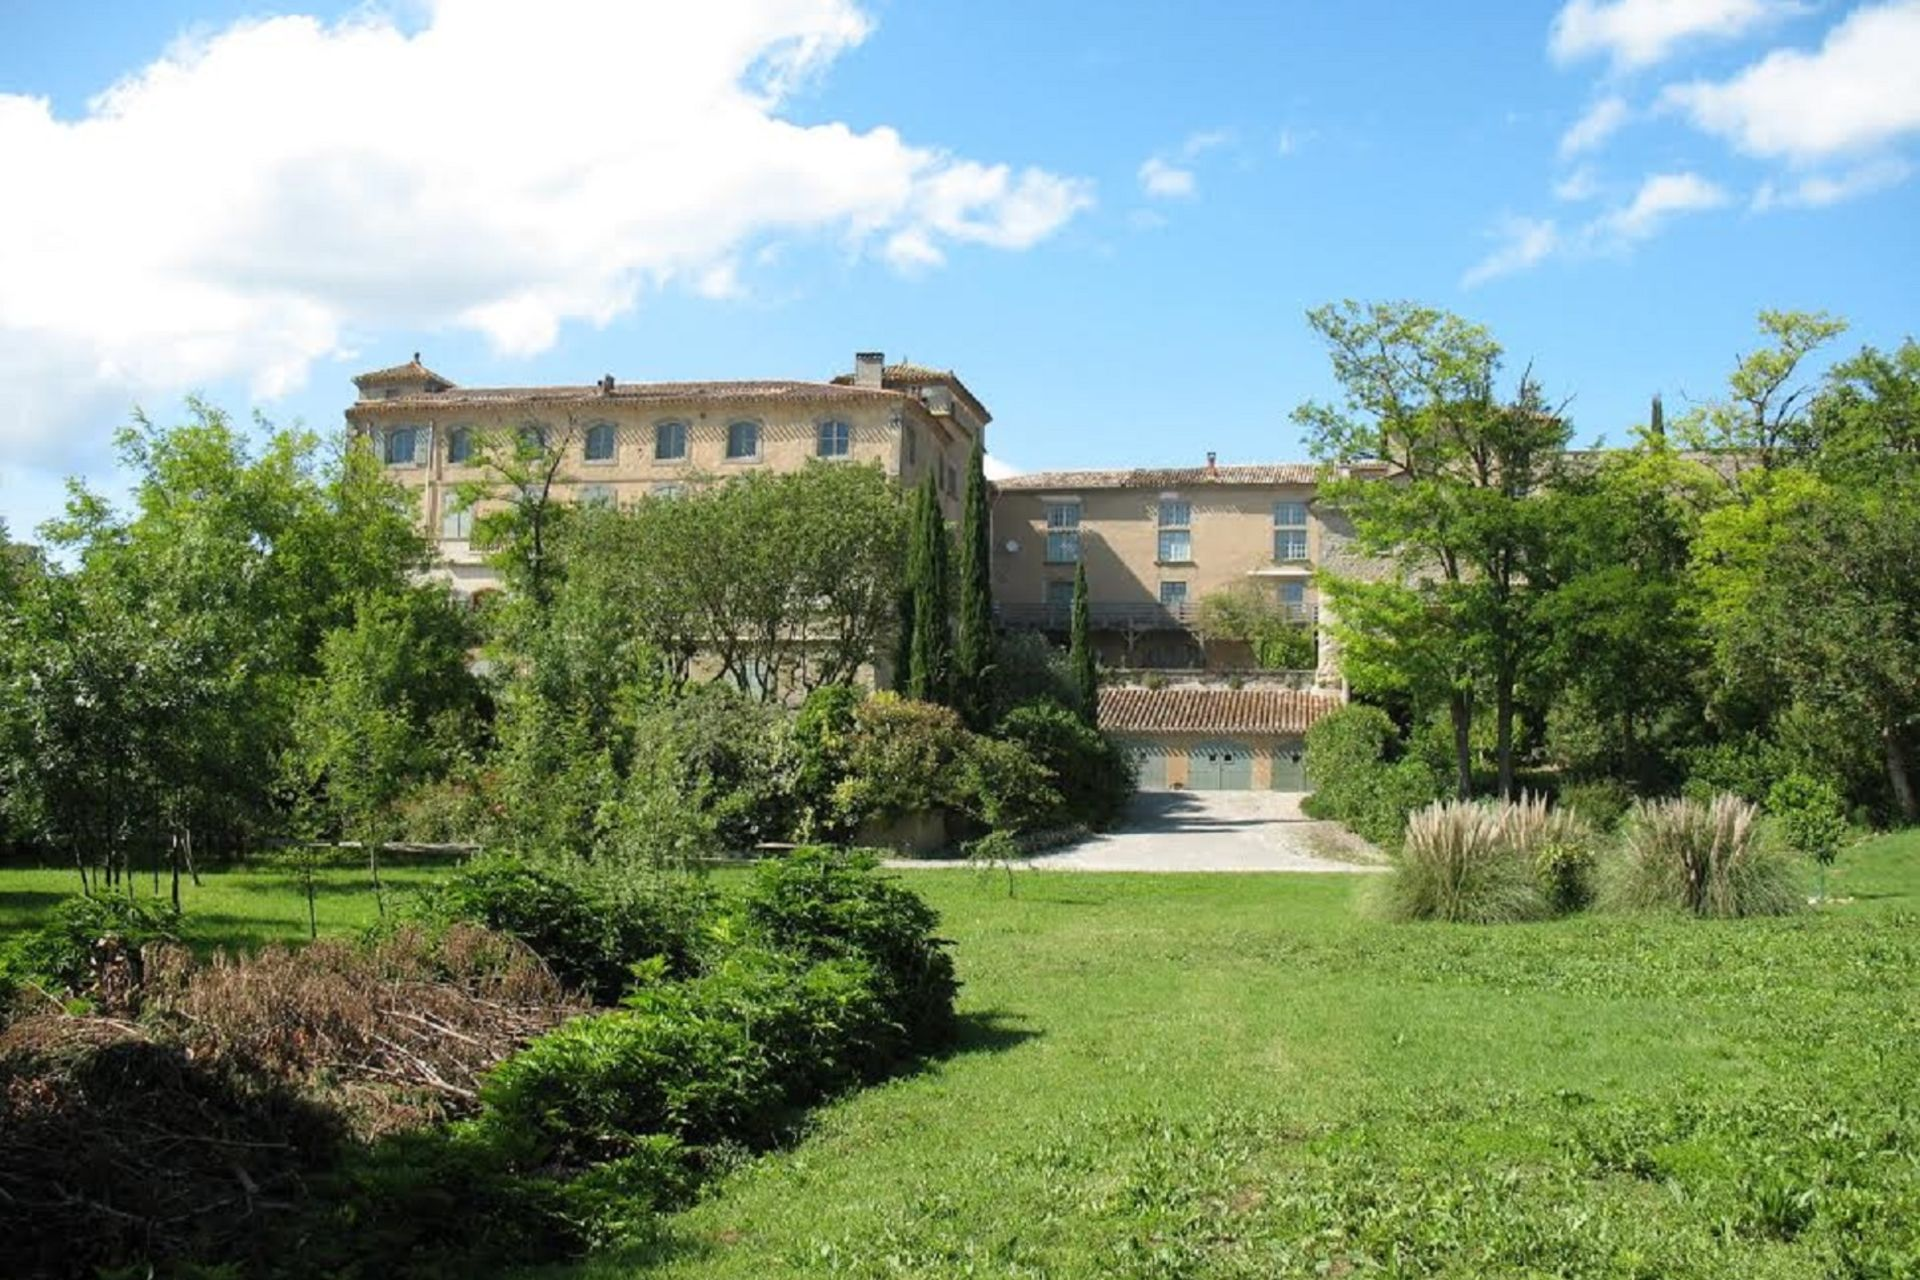 Buy 39 3 room apartment in french chateau 39 in languedoc for French chateau homes for sale